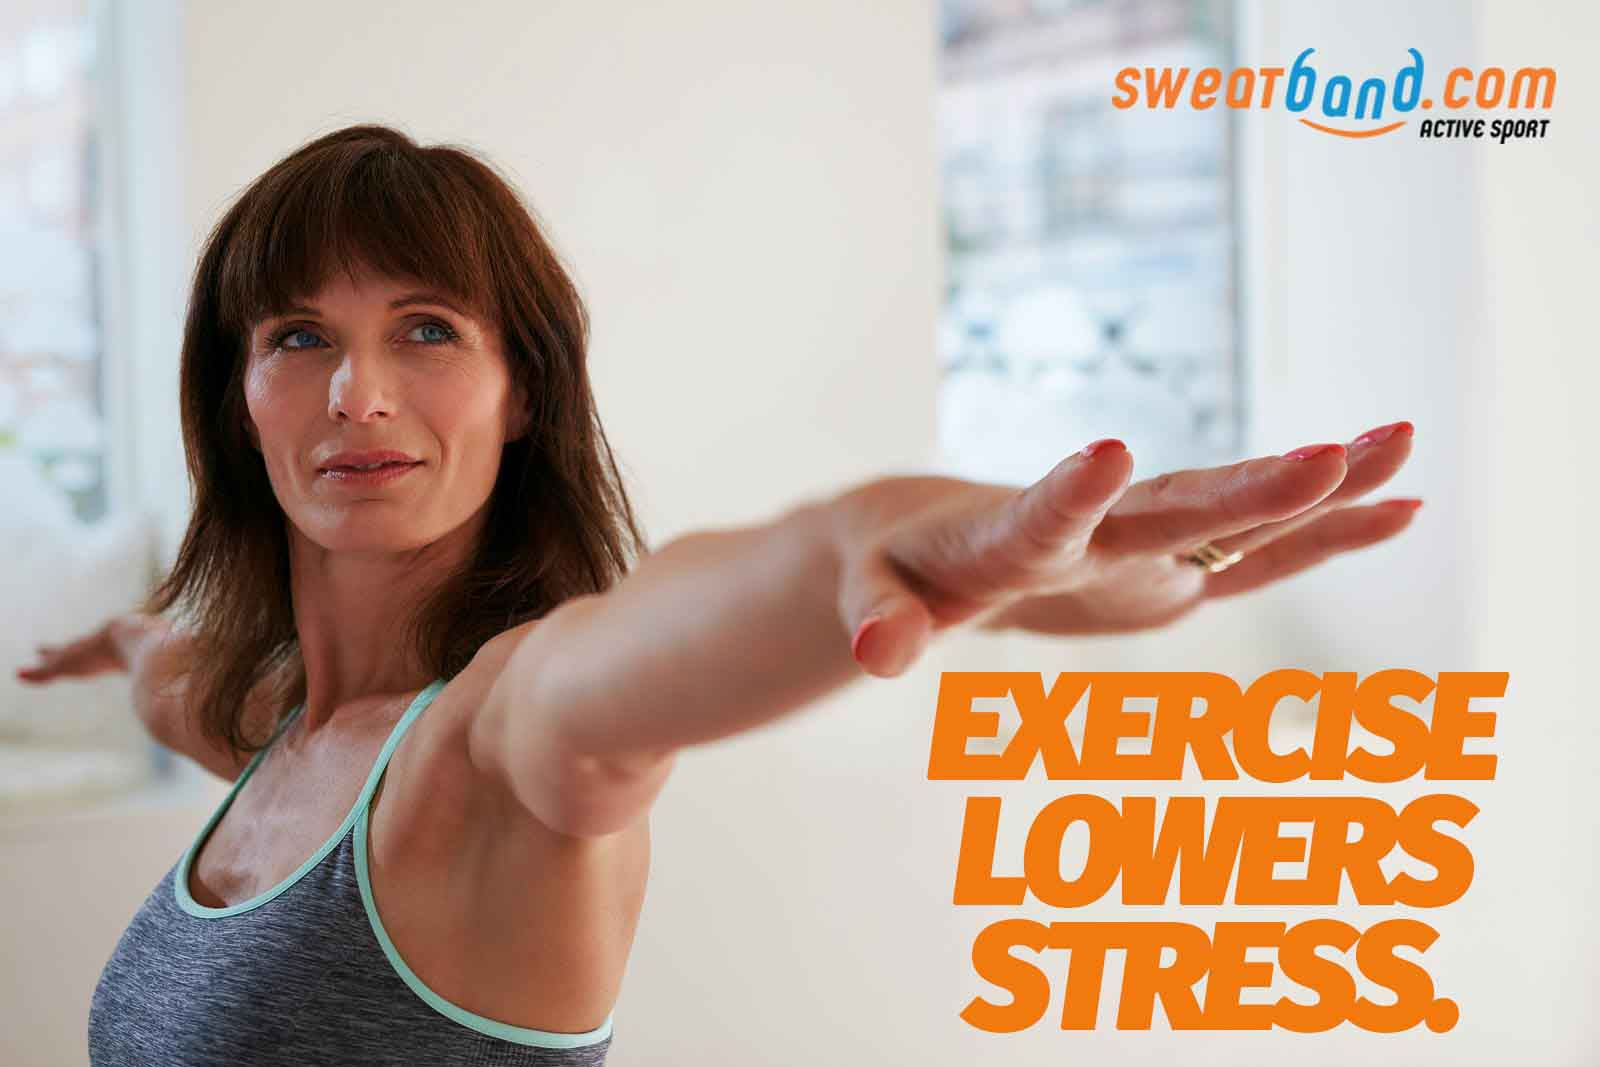 Exercise lowers stress